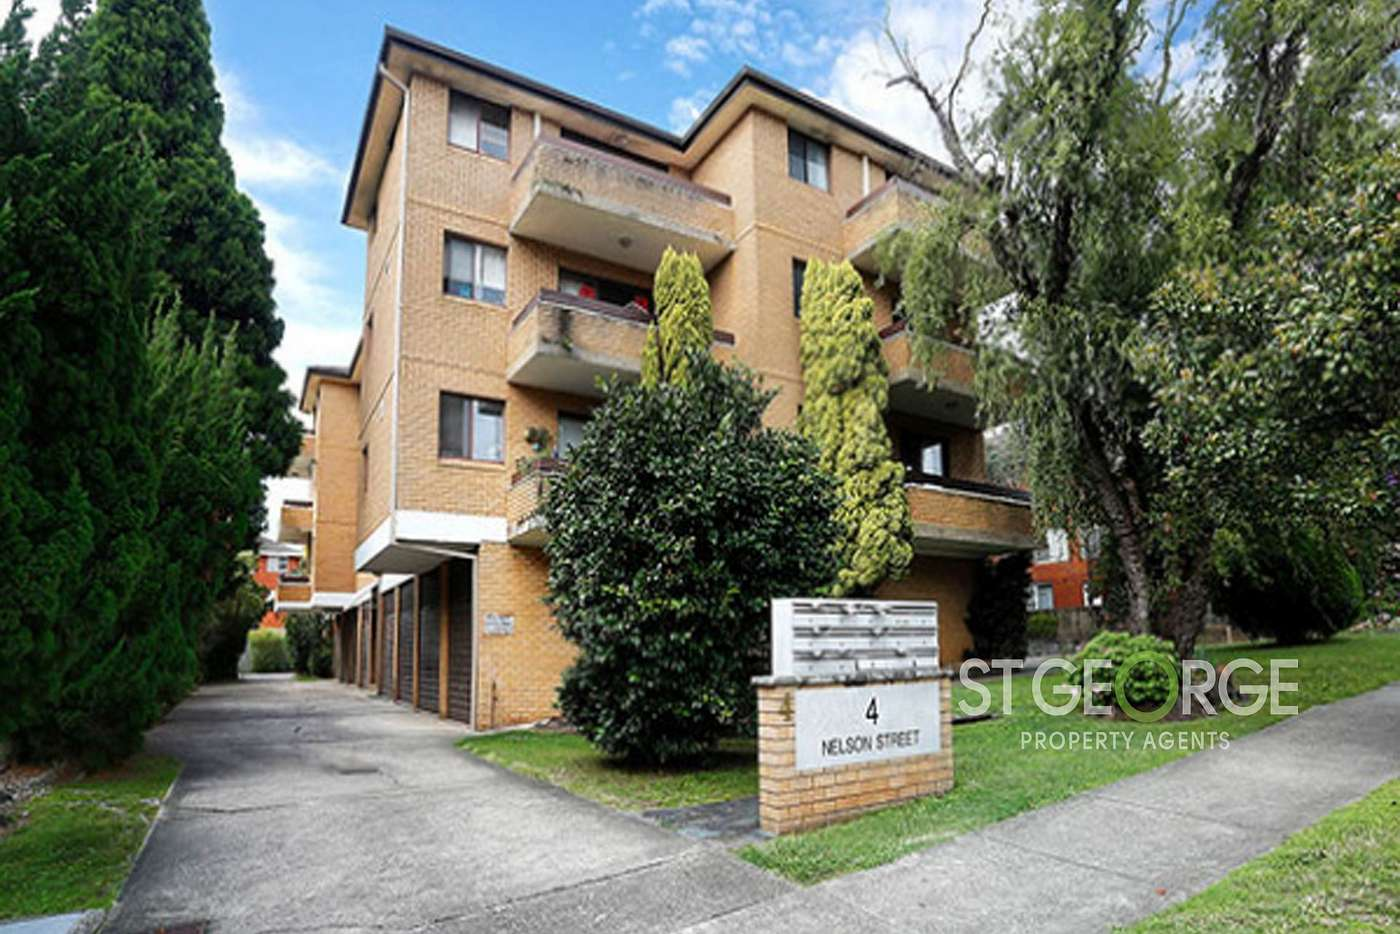 Seventh view of Homely apartment listing, 3/4 Nelson  Street, Penshurst NSW 2222